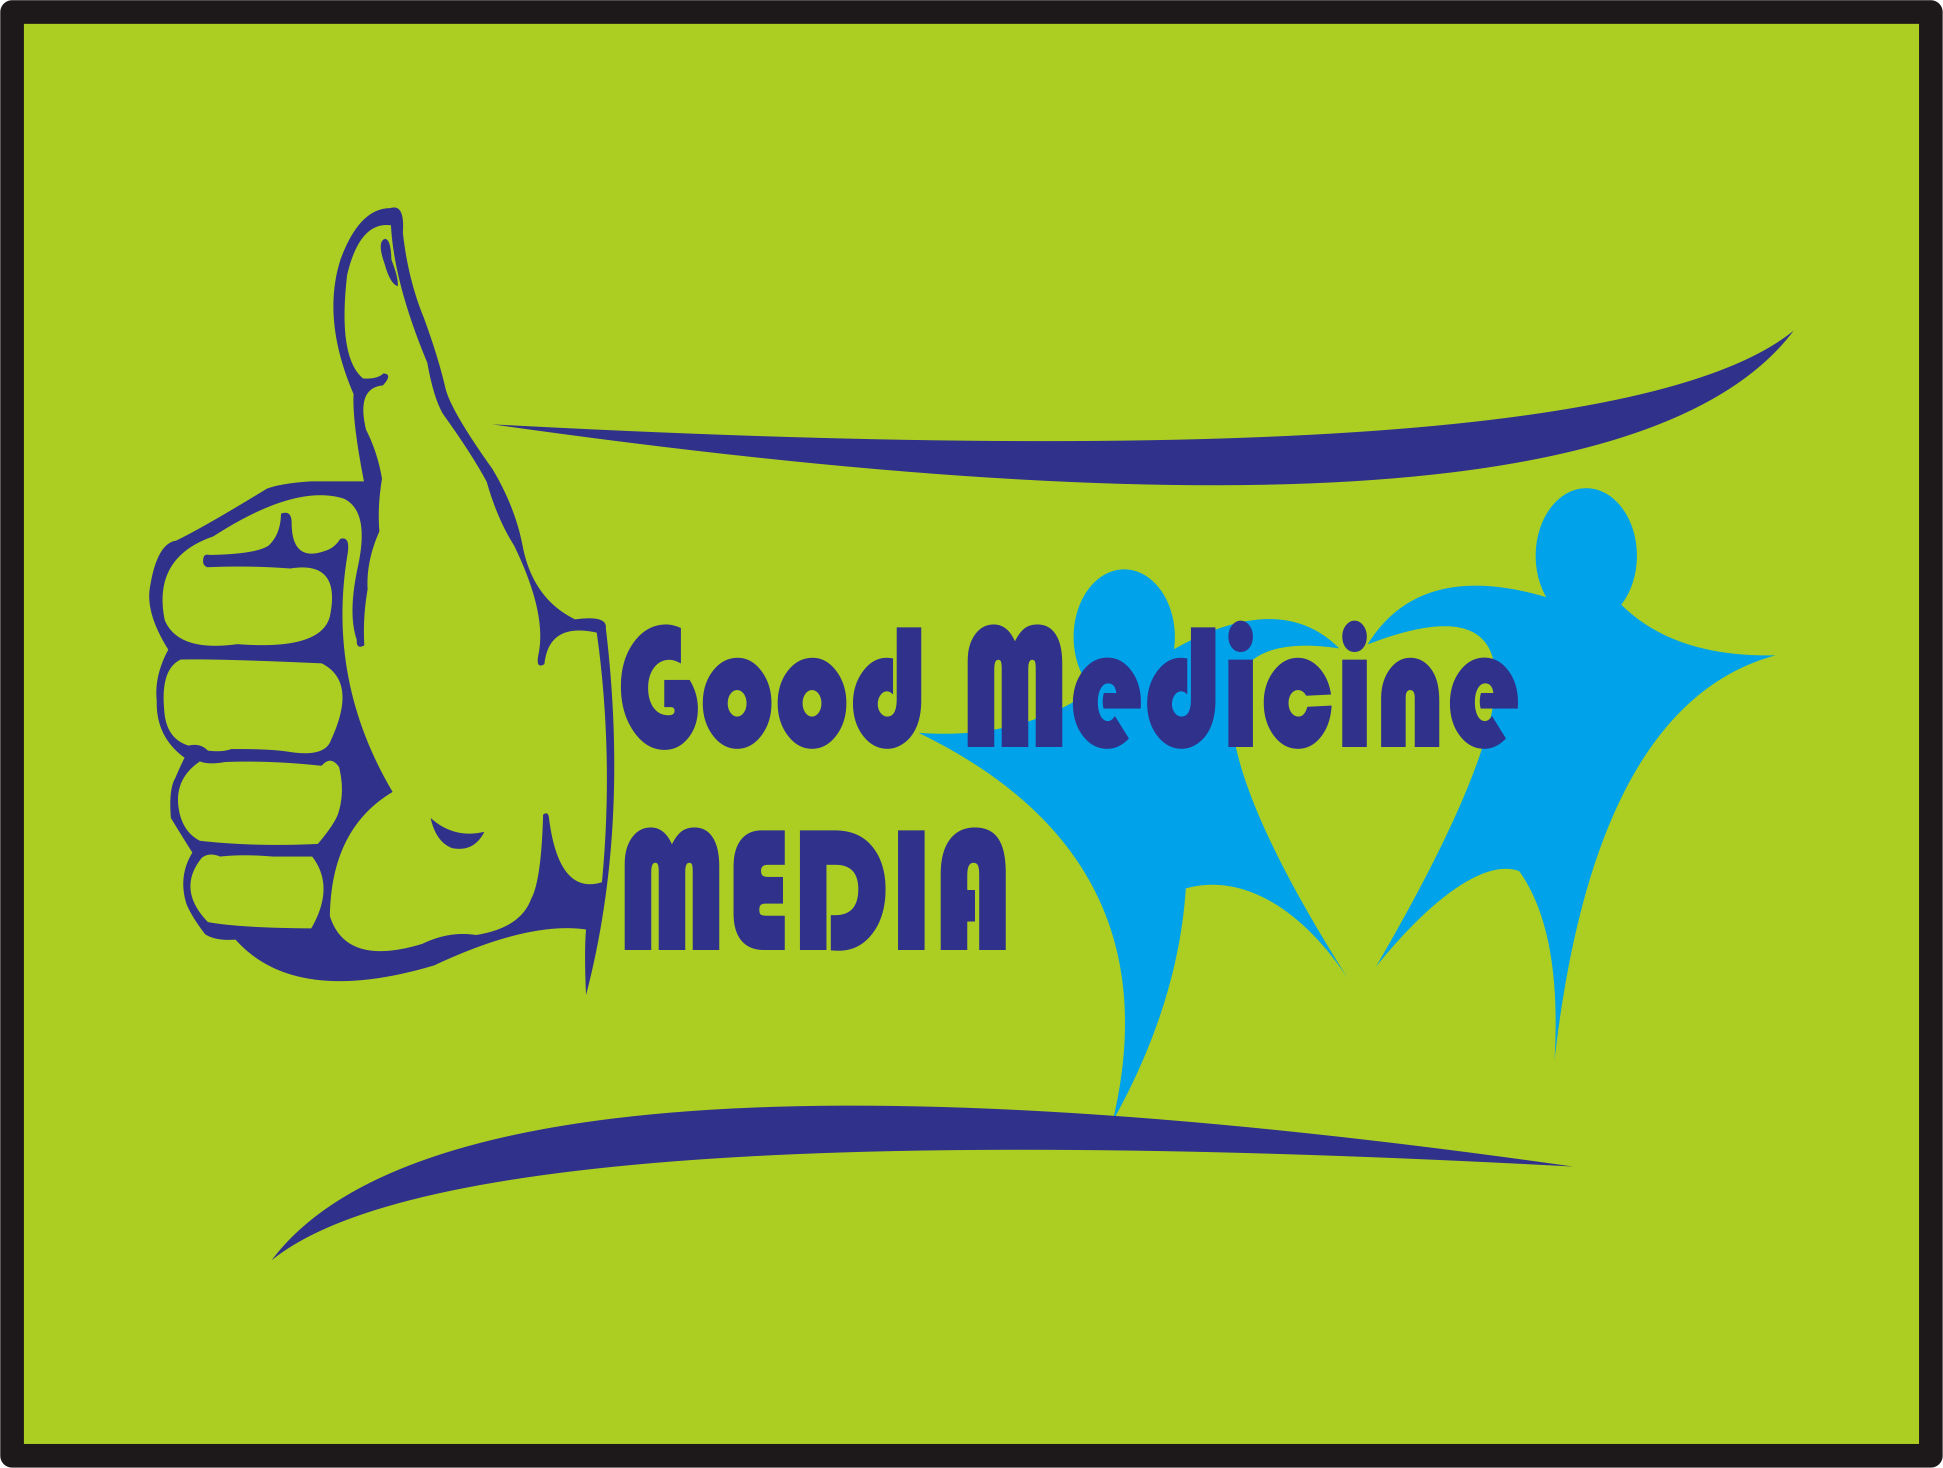 Logo Design by Teguh Hanuraga - Entry No. 19 in the Logo Design Contest Good Medicine Media Logo Design.